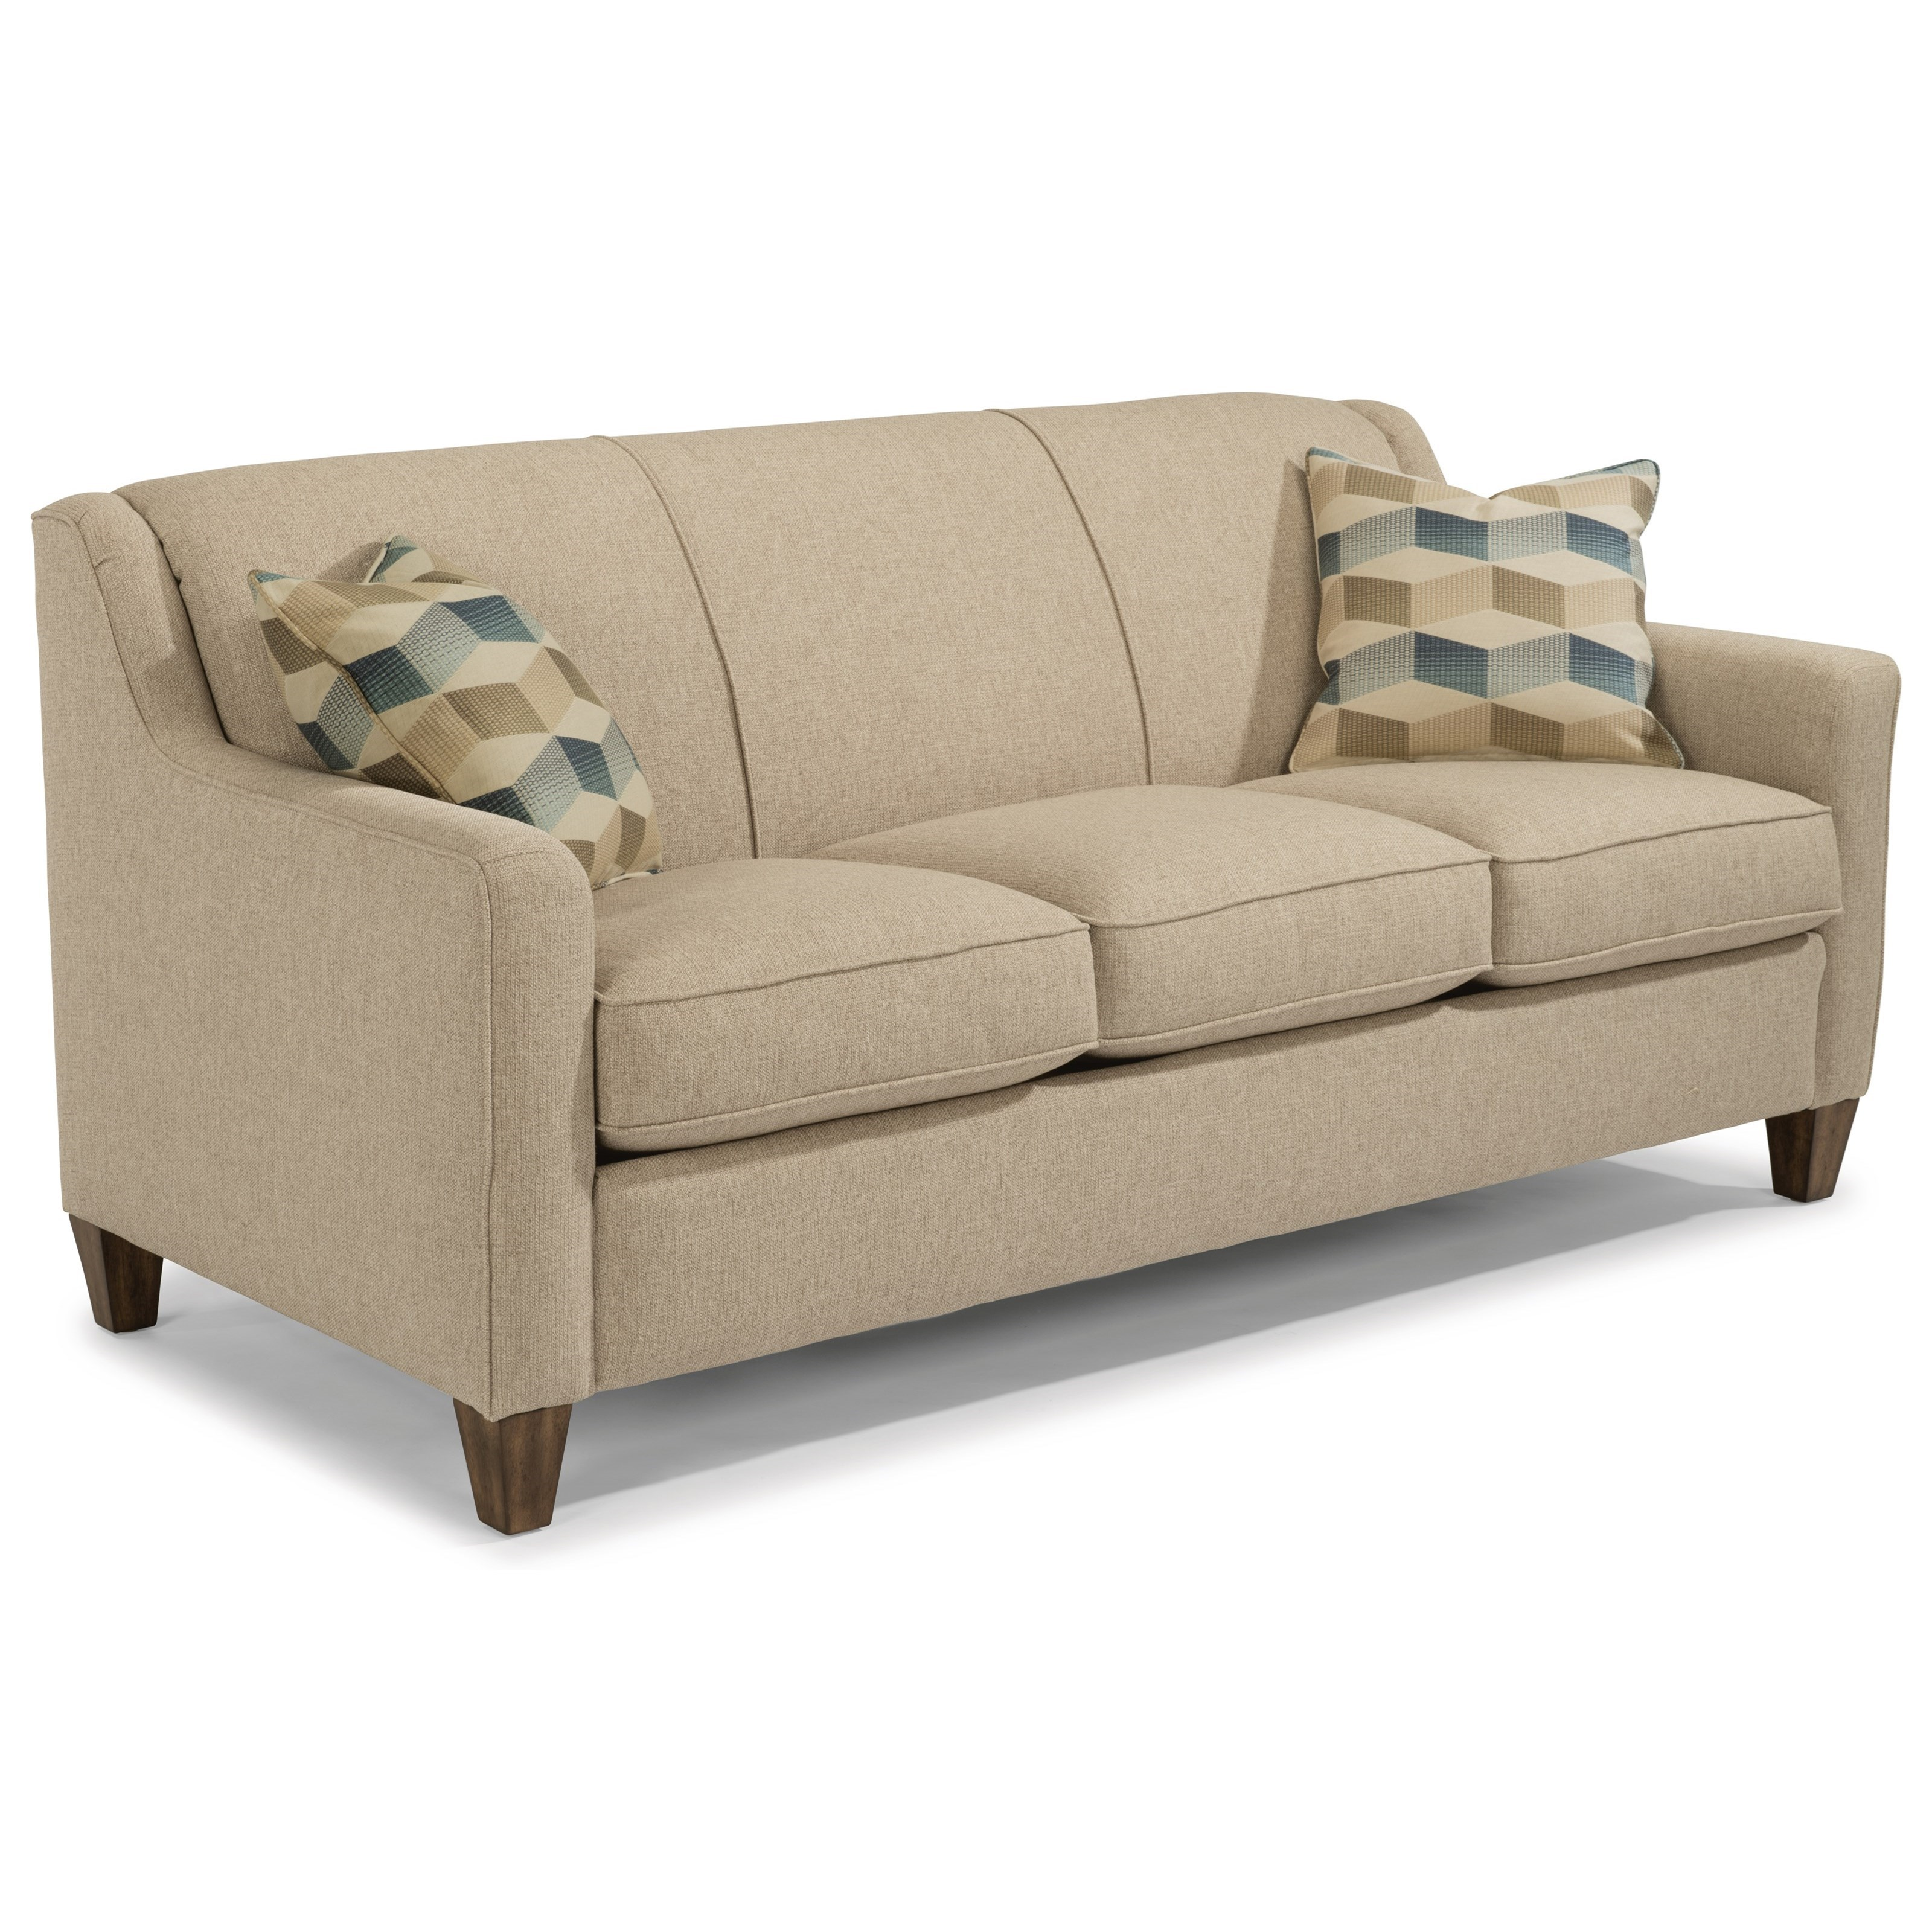 Sofa Arm Covers Dublin Holly Contemporary Queen Sleeper Sofa With Angled Track Arms By Flexsteel At Rooms For Less